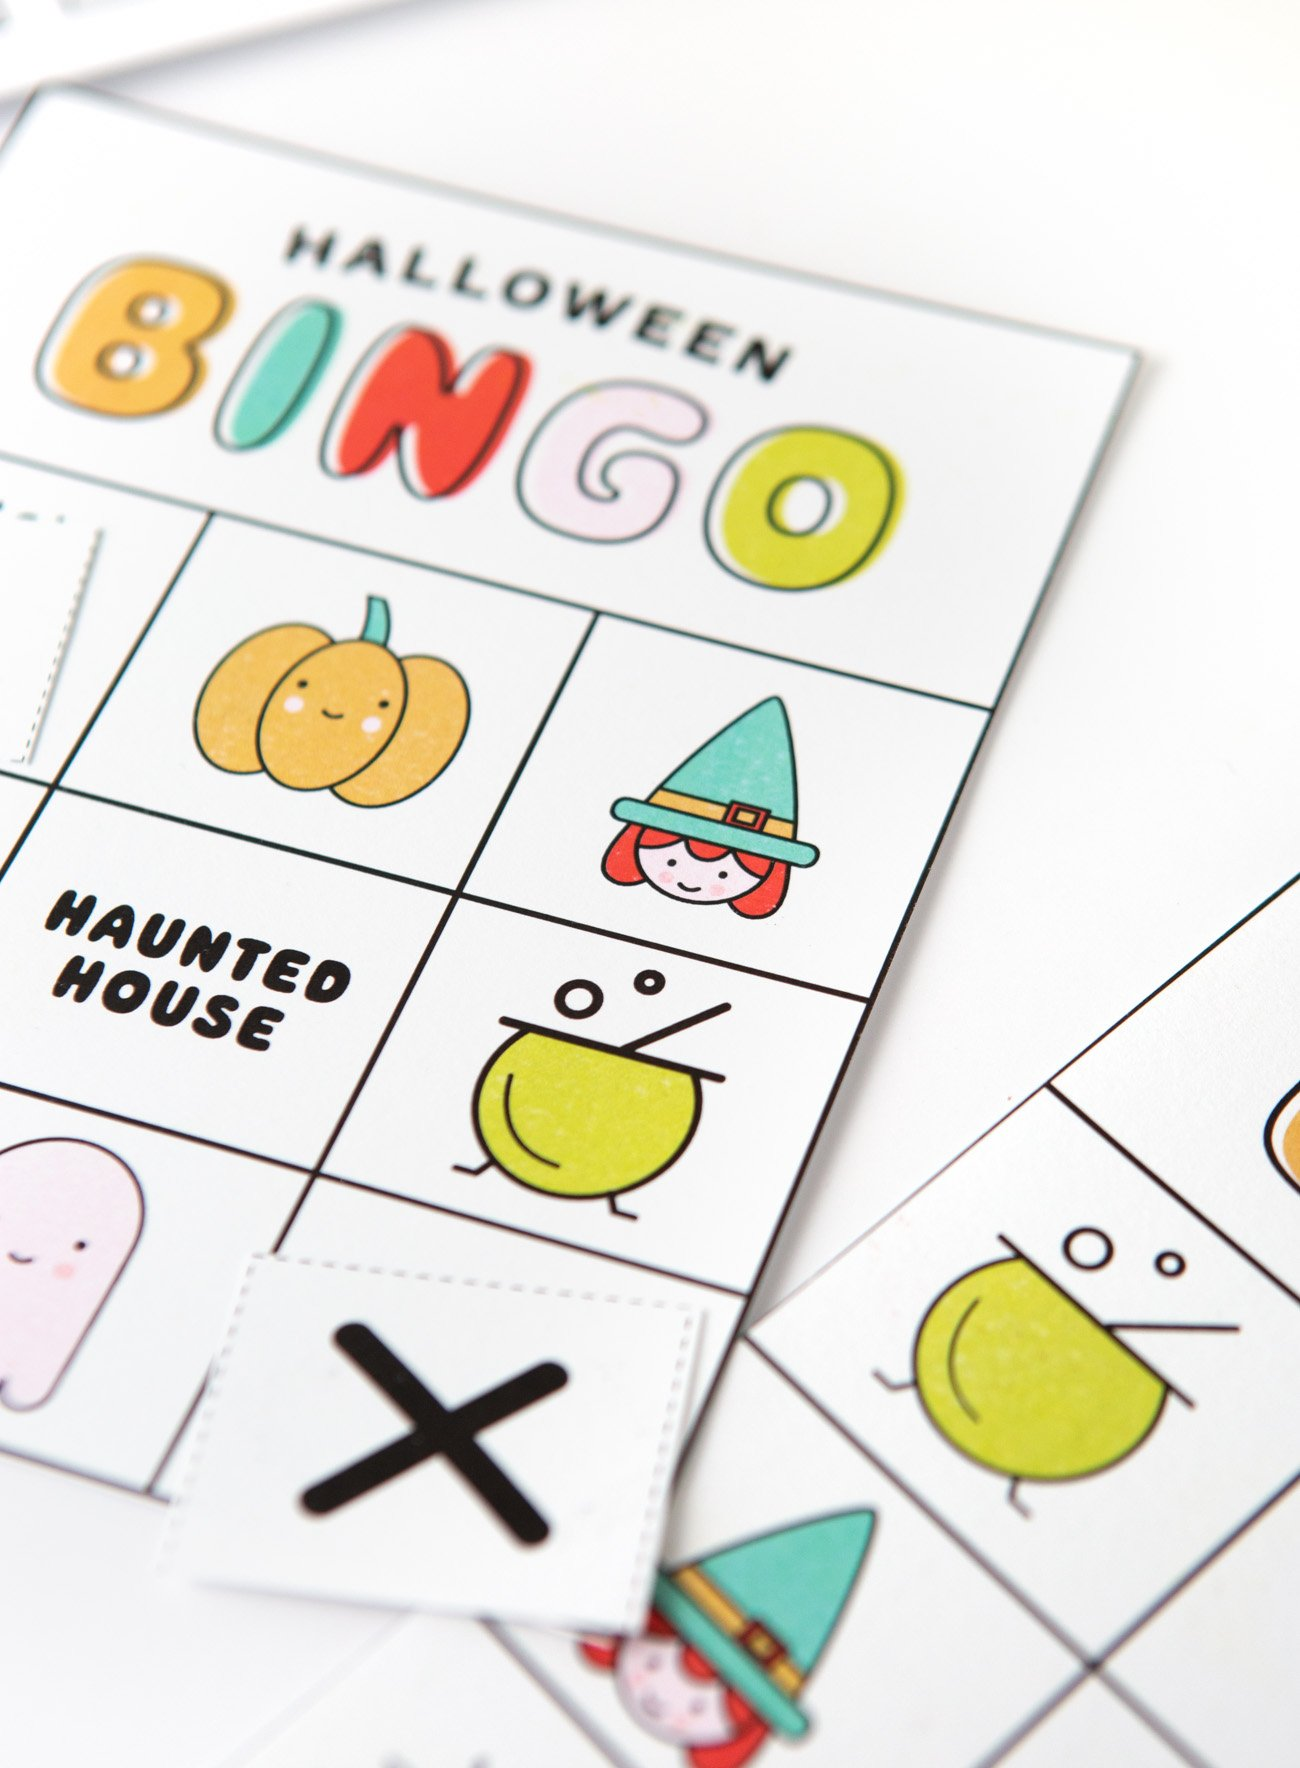 photo regarding Printable Halloween Bingo Card called Totally free Printable Halloween Bingo Playing cards - Layout Take in Repeat